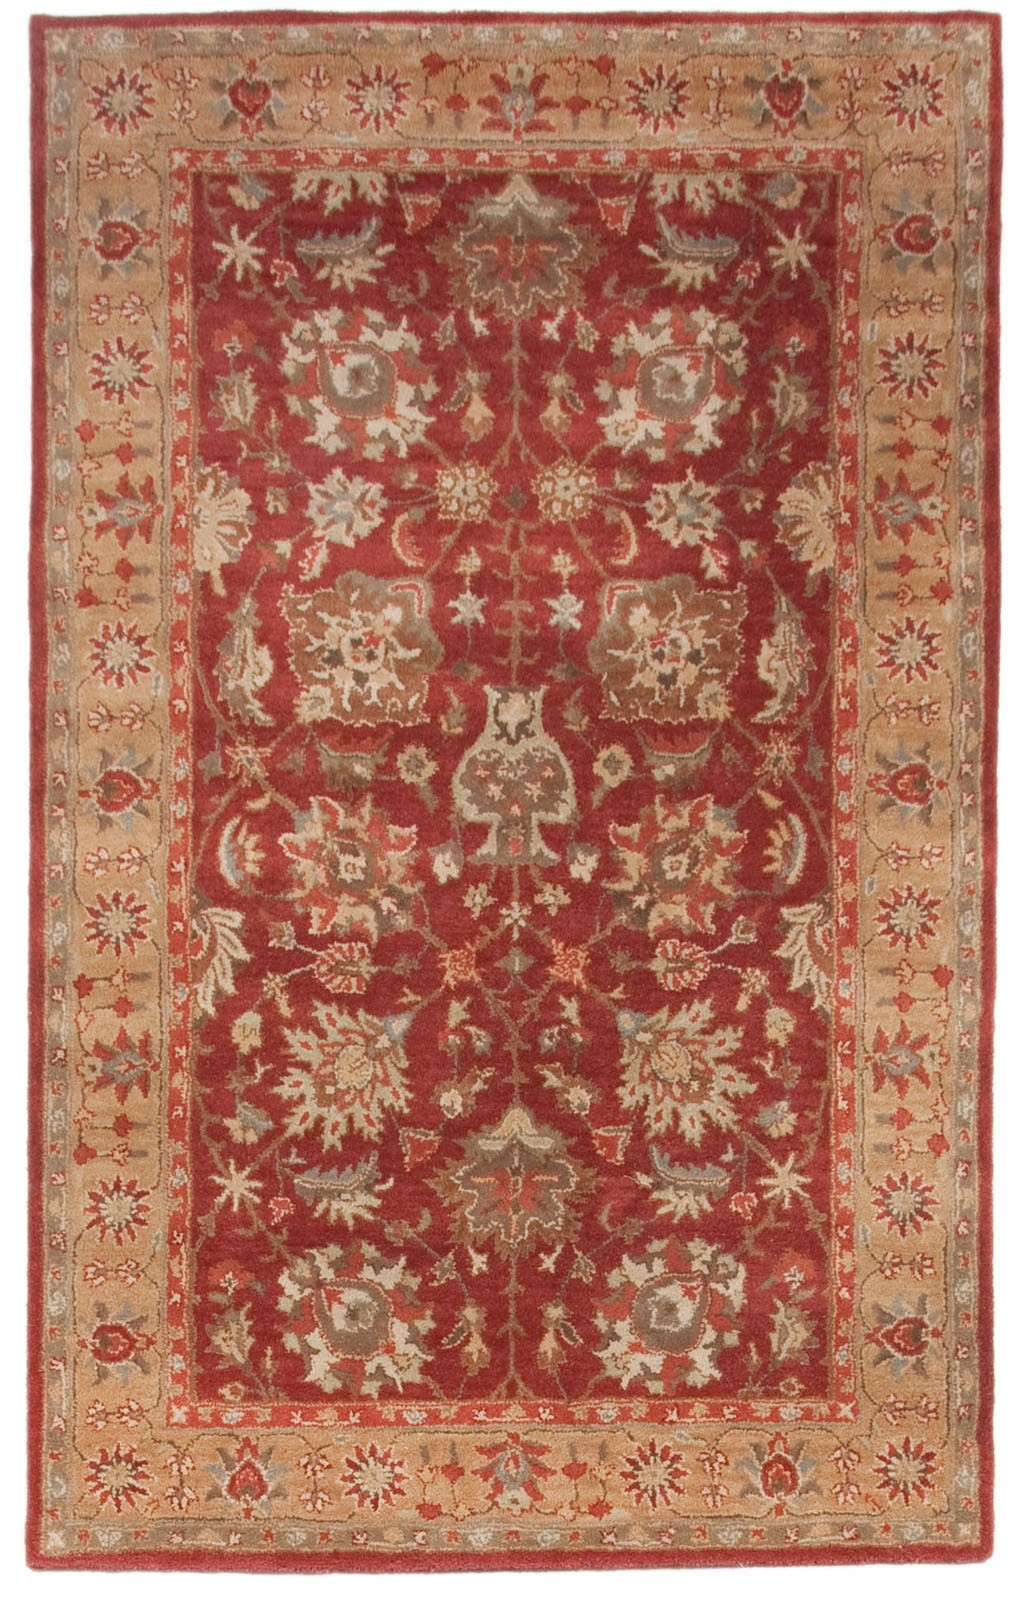 Beautiful Royal Hand Tufted Wool Area Rug 5×8 Red Beige Blue Yellow Throughout Wool Area Rugs 5× (#2 of 15)